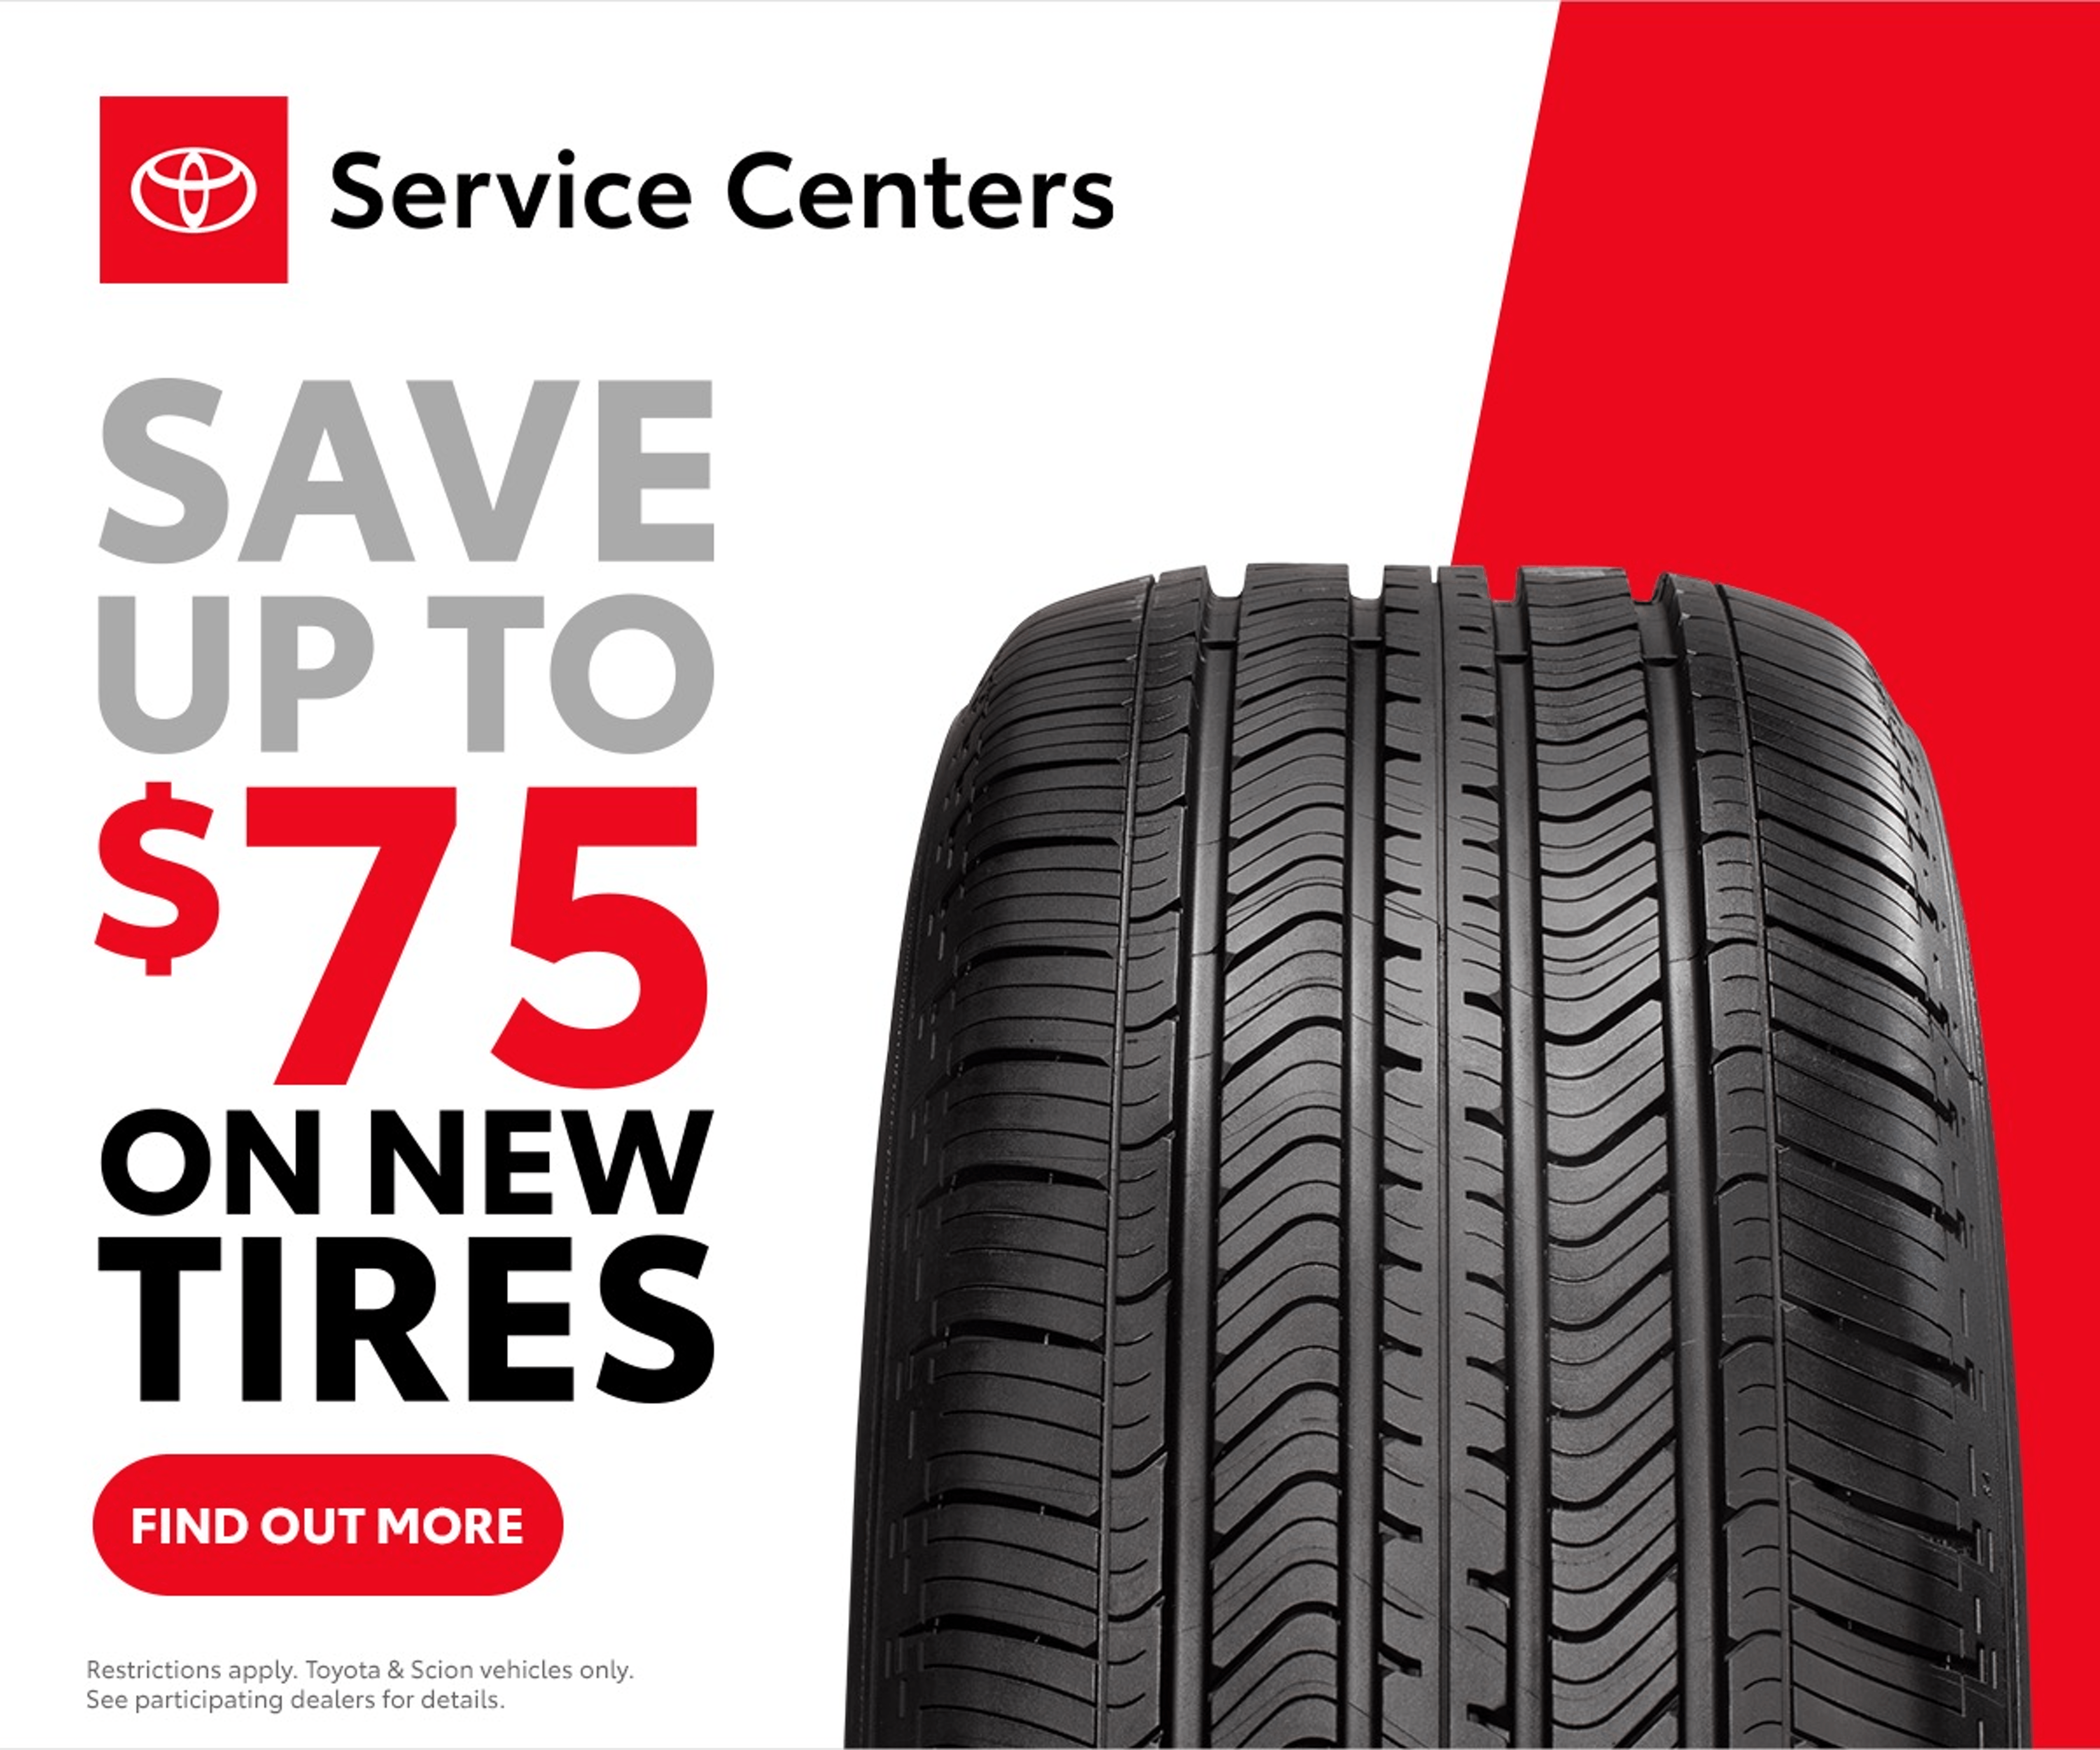 service special - save up to $75 on new tires